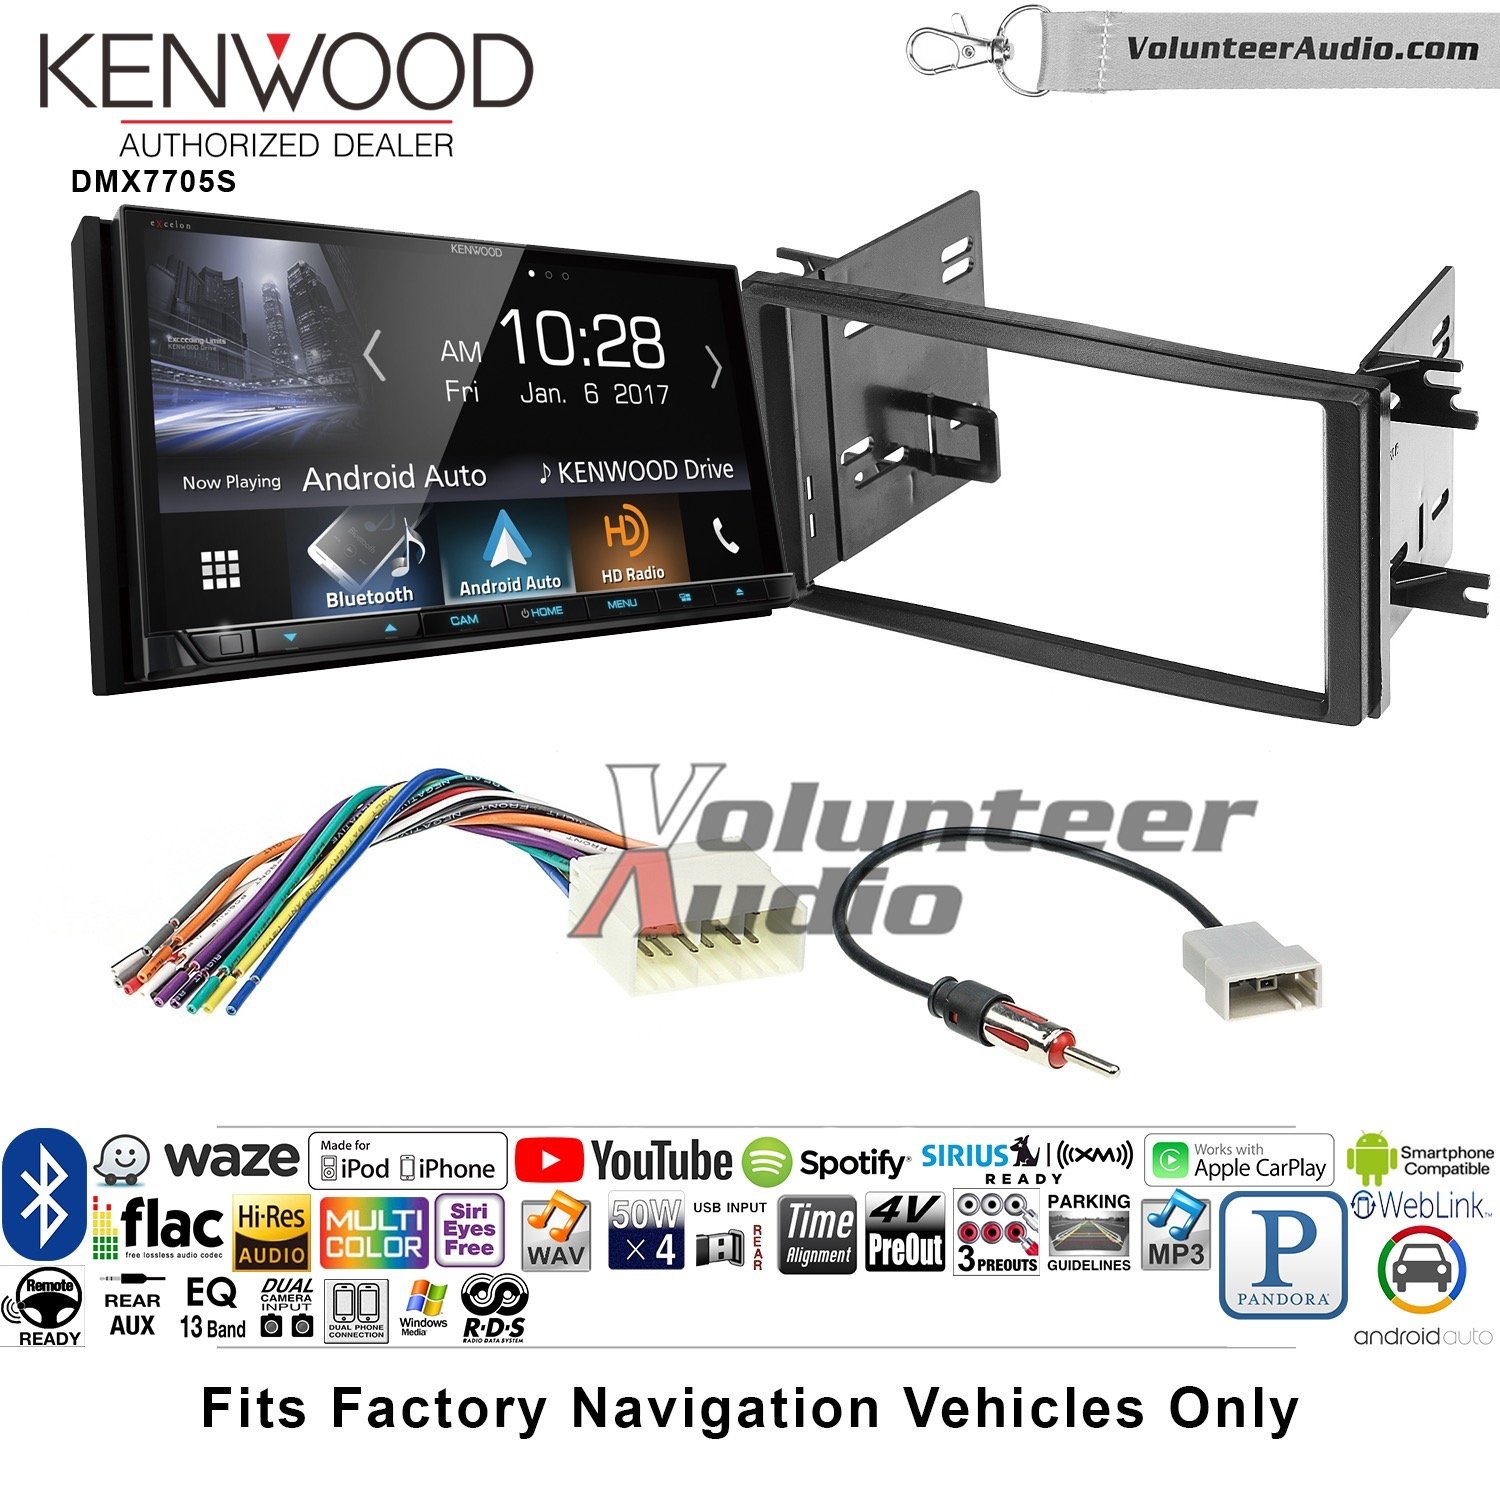 Volunteer Audio Kenwood DMX7705S Double Din Radio Install Kit with Apple CarPlay Android Auto Bluetooth Fits 2009-2013 Subaru Forester, 2008-2011 Subaru Impreza